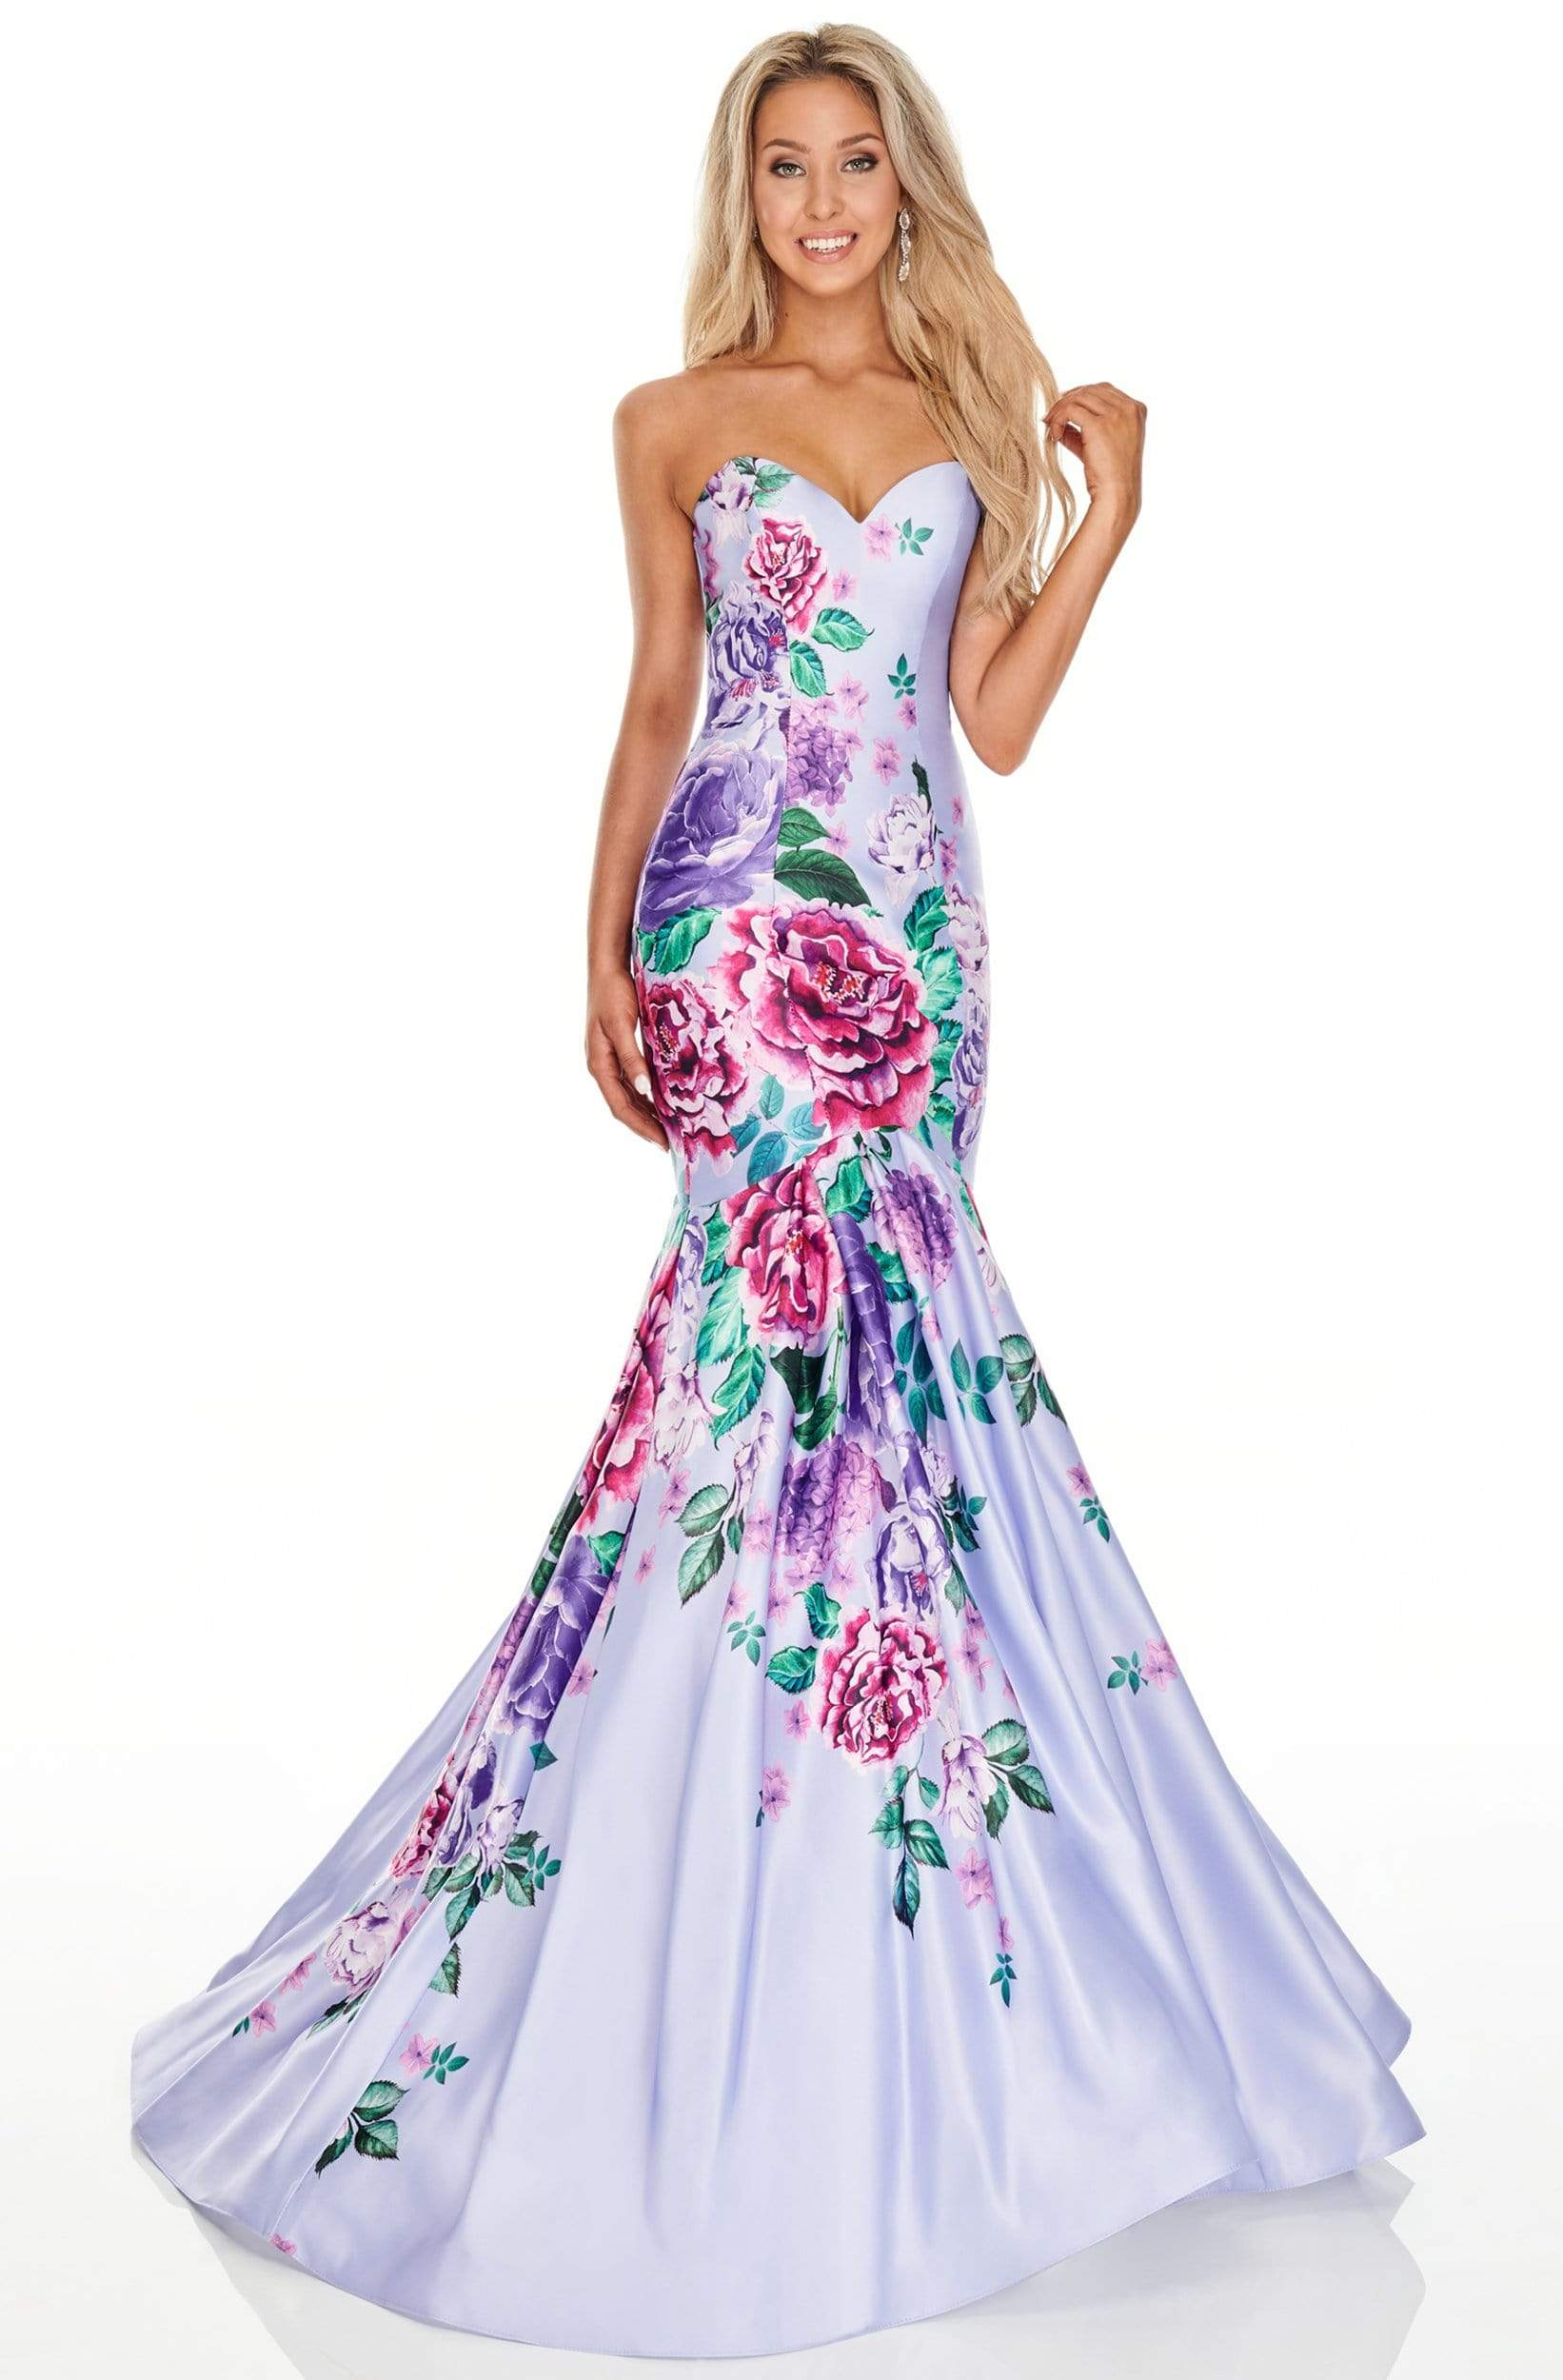 Rachel Allan Prom - 7073 Sweetheart Floral Printed Trumpet Dress from Rachel Allan